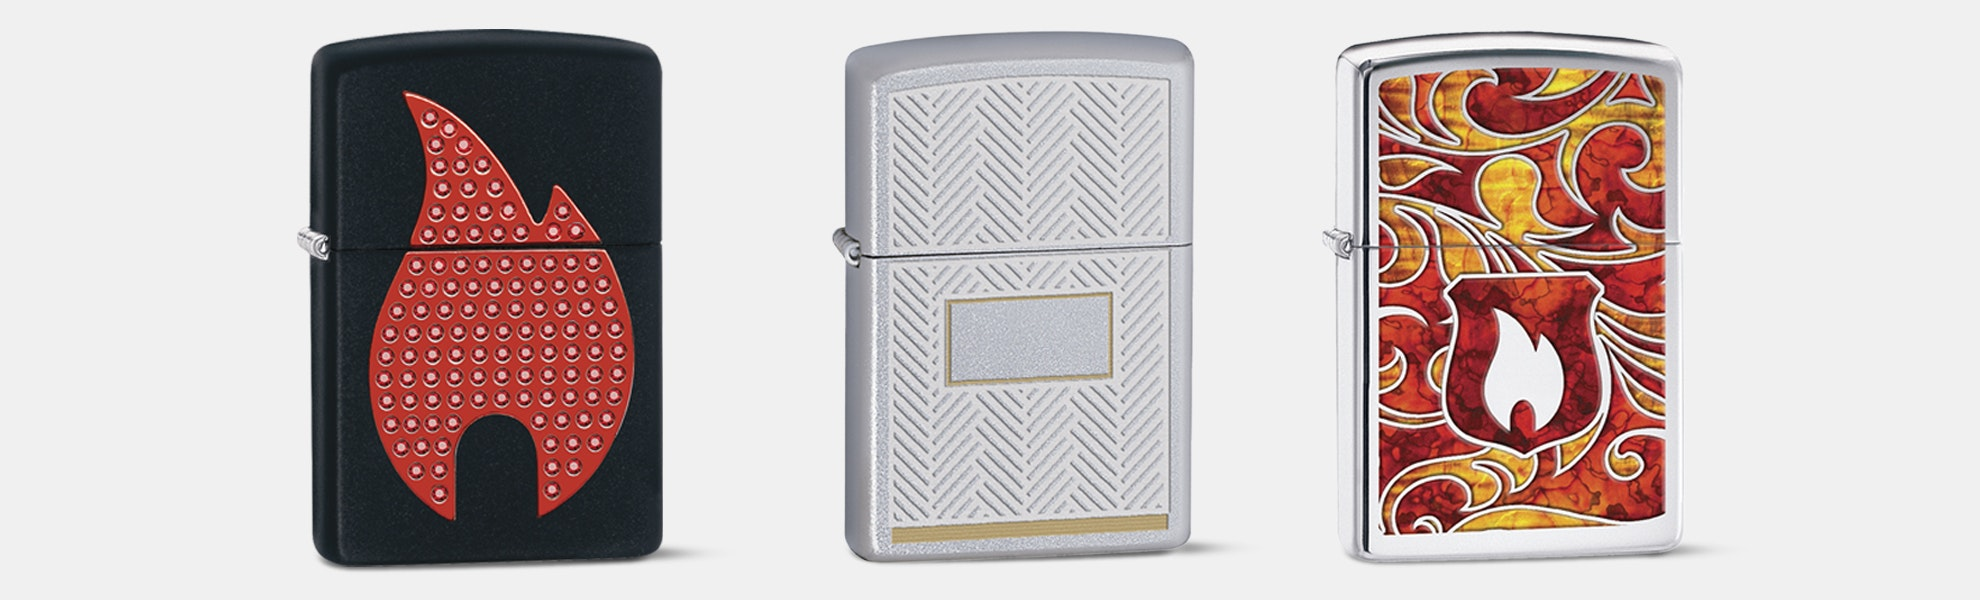 Zippo Lighters: Classic Collection – Flash Sale